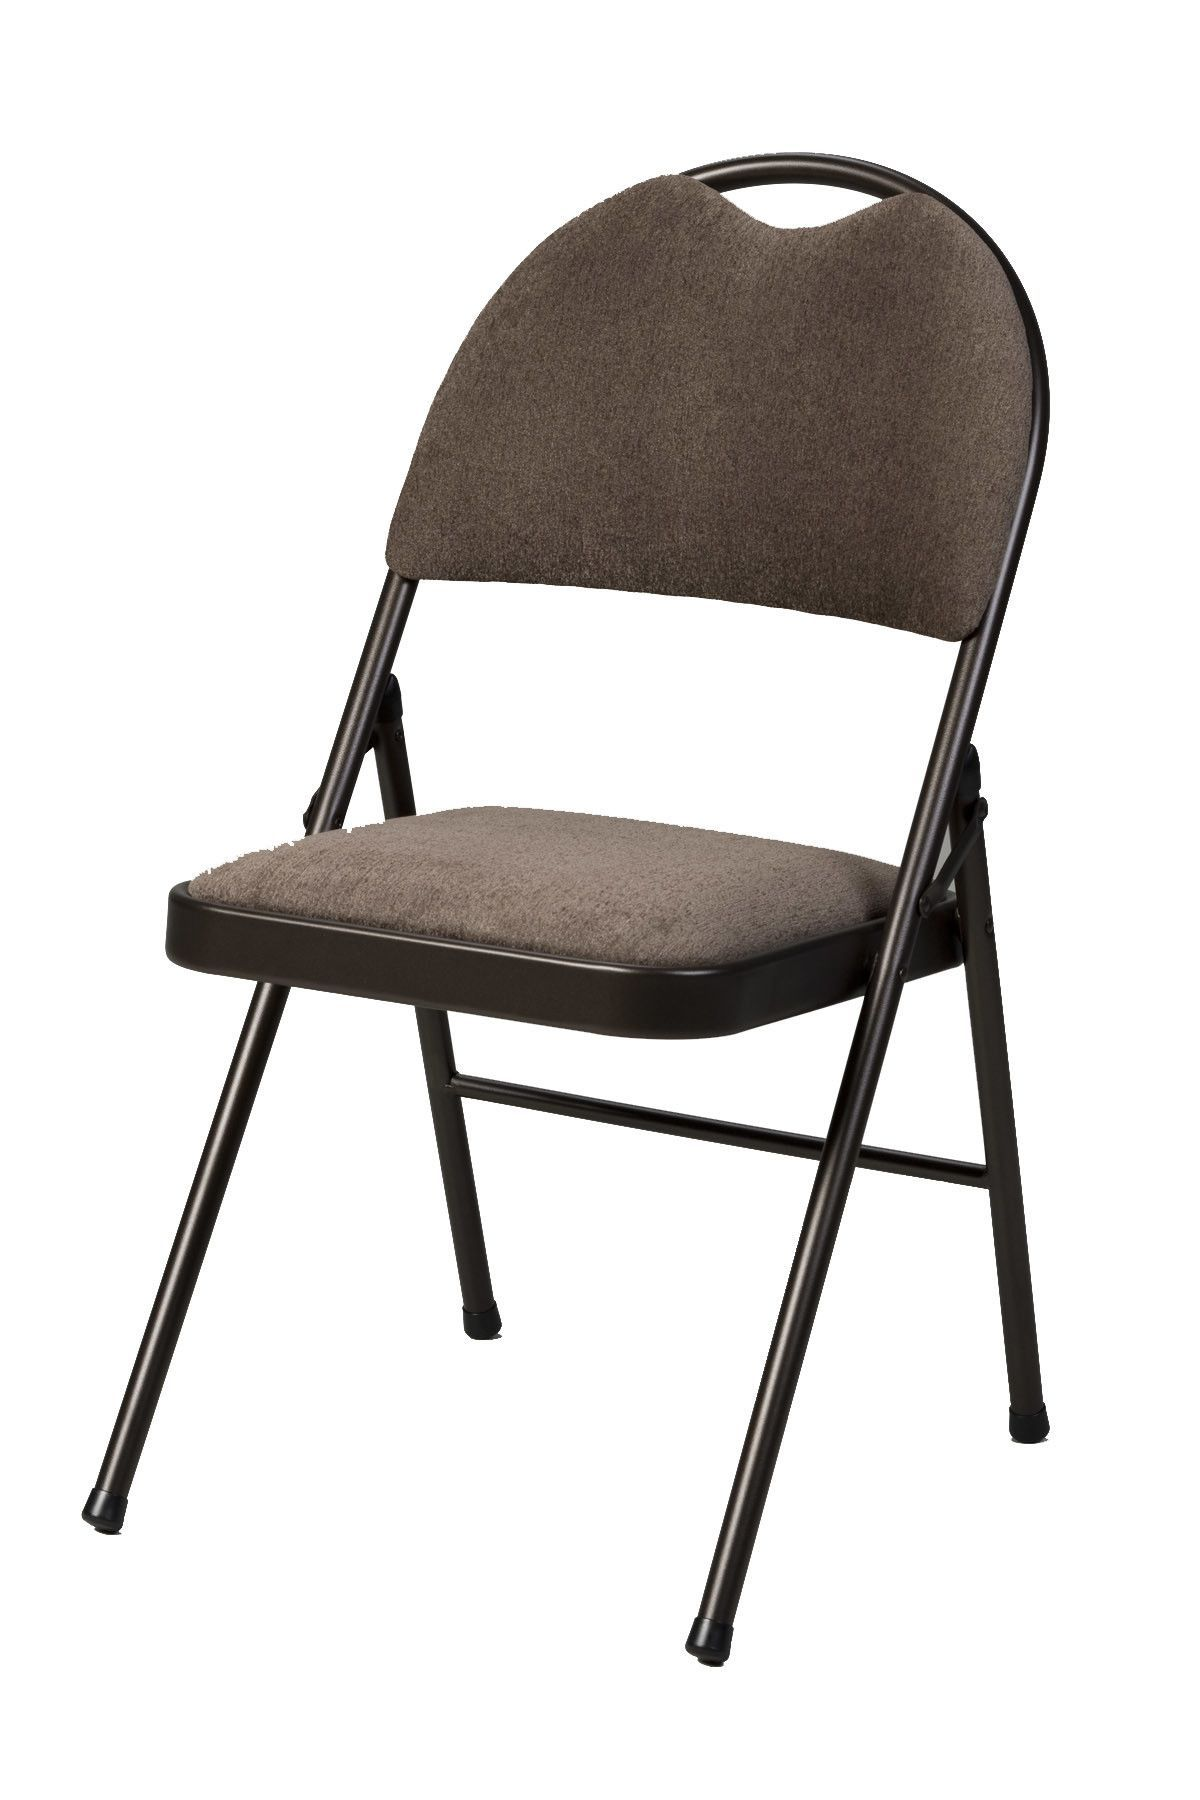 double fabric padded folding chair products padded folding rh pinterest co uk